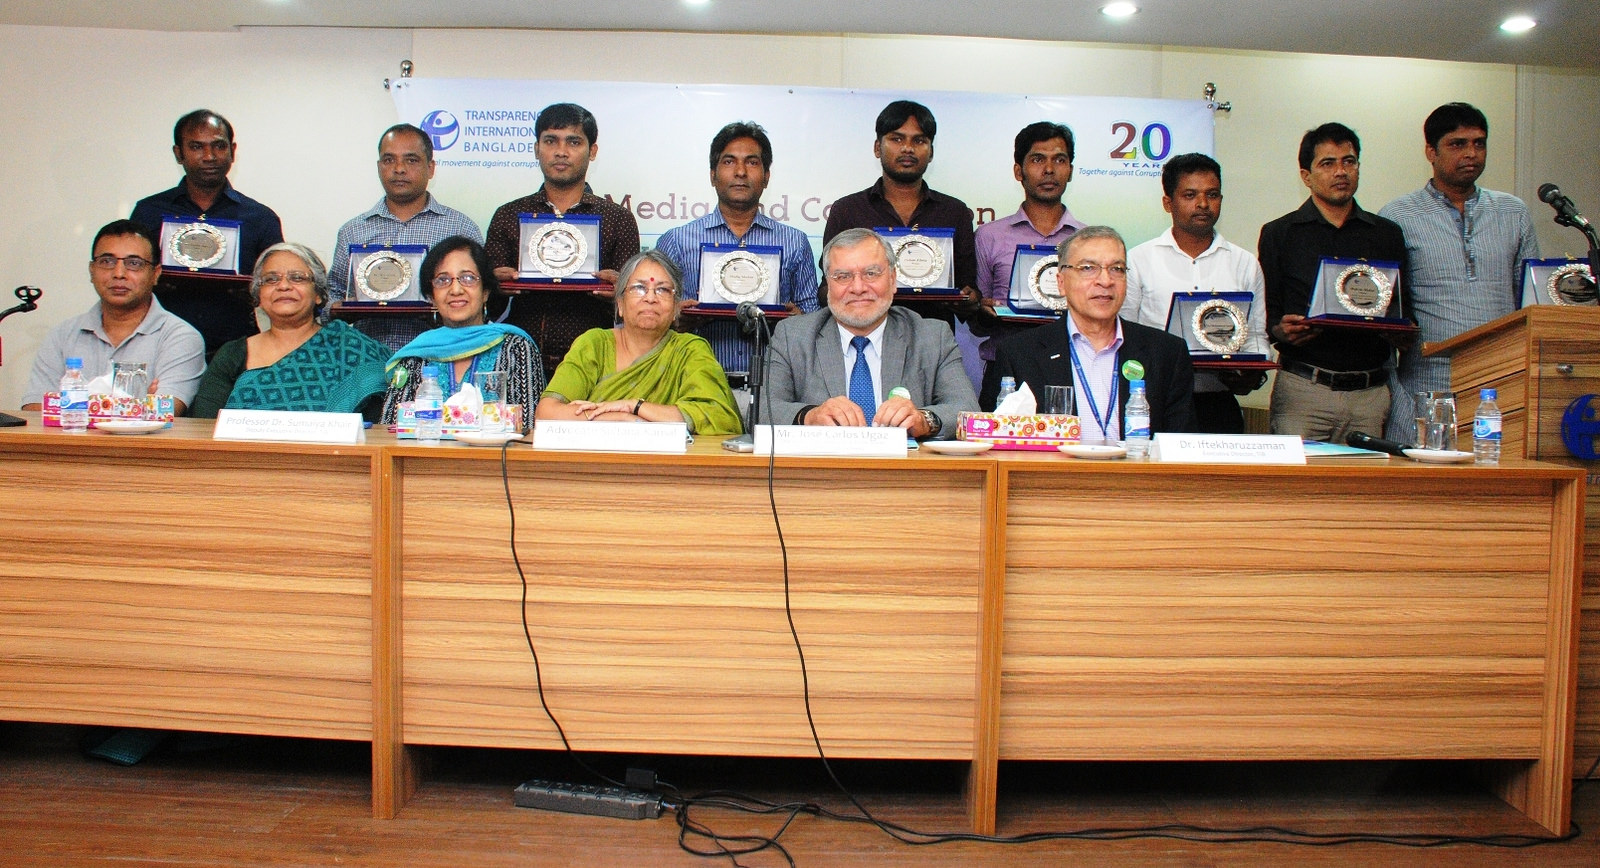 tib-announces-investigative-journalism-awards-2016-ti-chair-calls-bangladeshi-journalists-to-continue-to-produce-more-investigative-reports